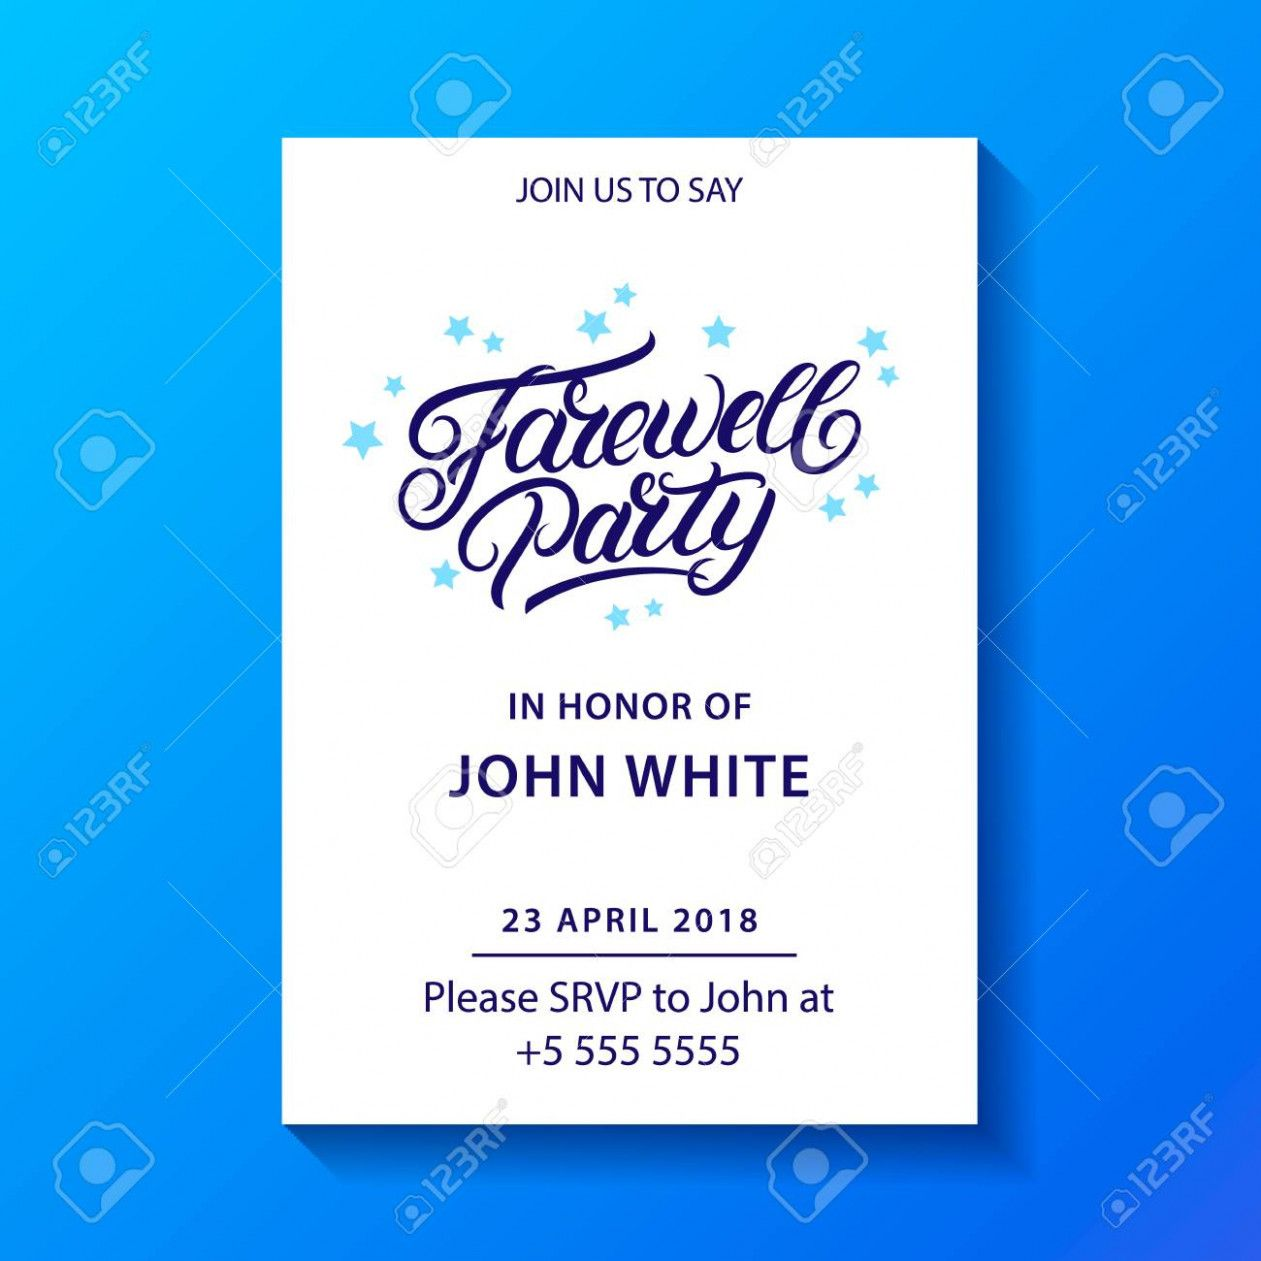 Farewell Party Card In Treads 2020 For Ideas Invitationcard